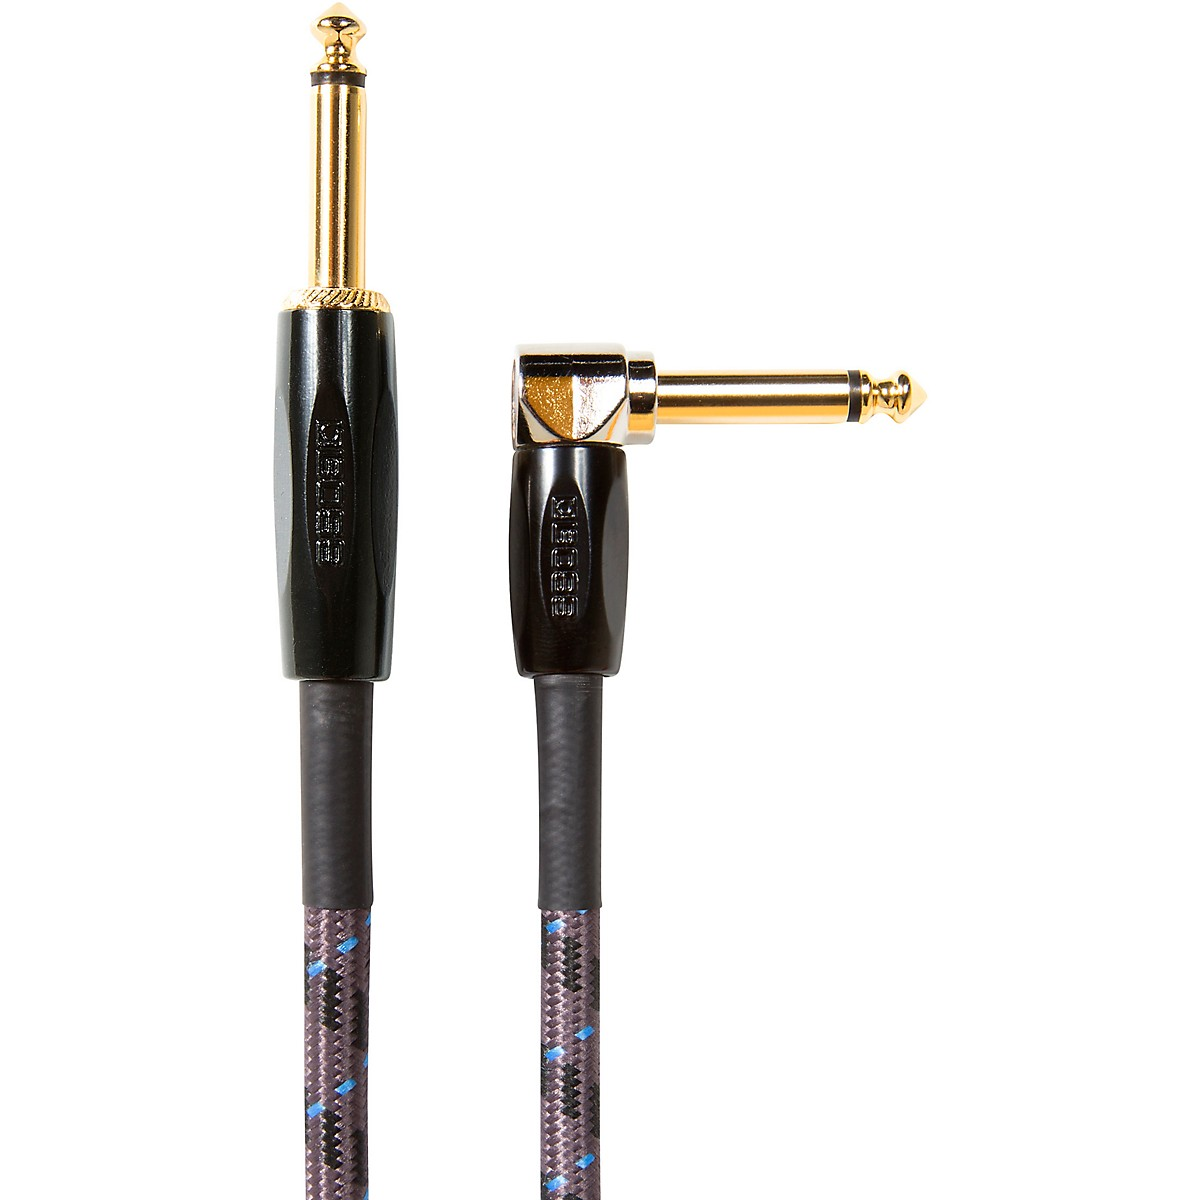 Boss BIC-25A 7.5 m Instrument Cable, Angled/Straight 1/4